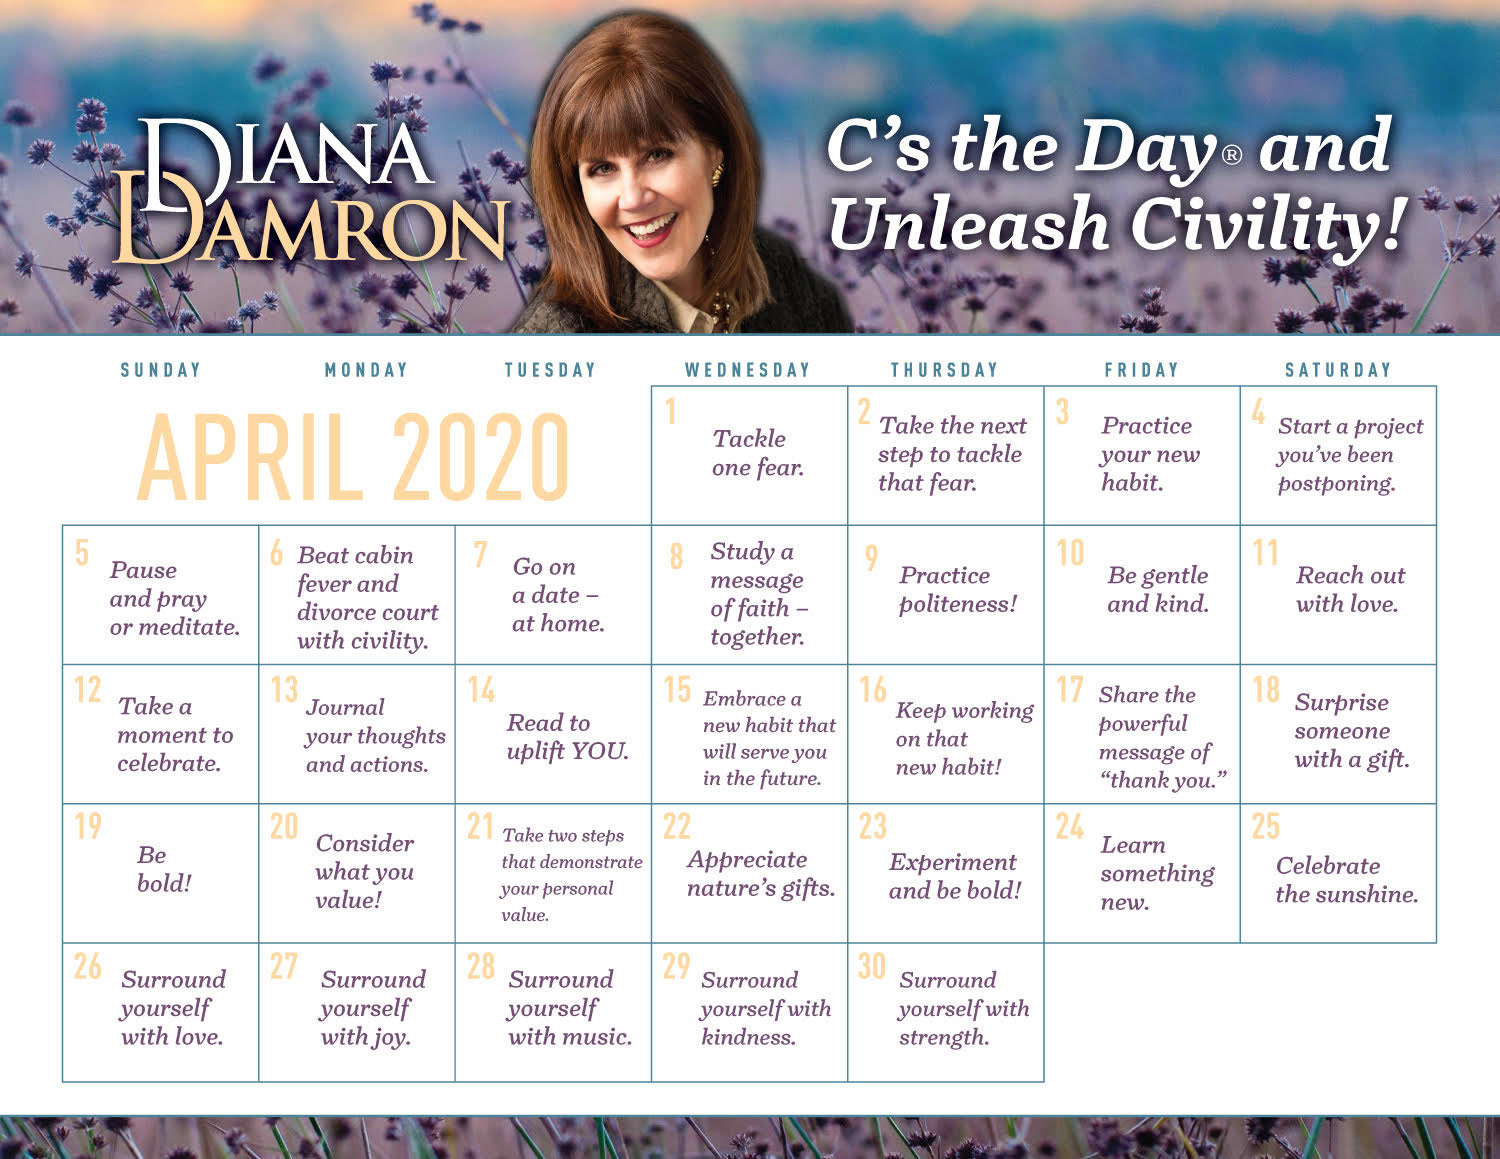 Diana's April Calendar by Diana Damron